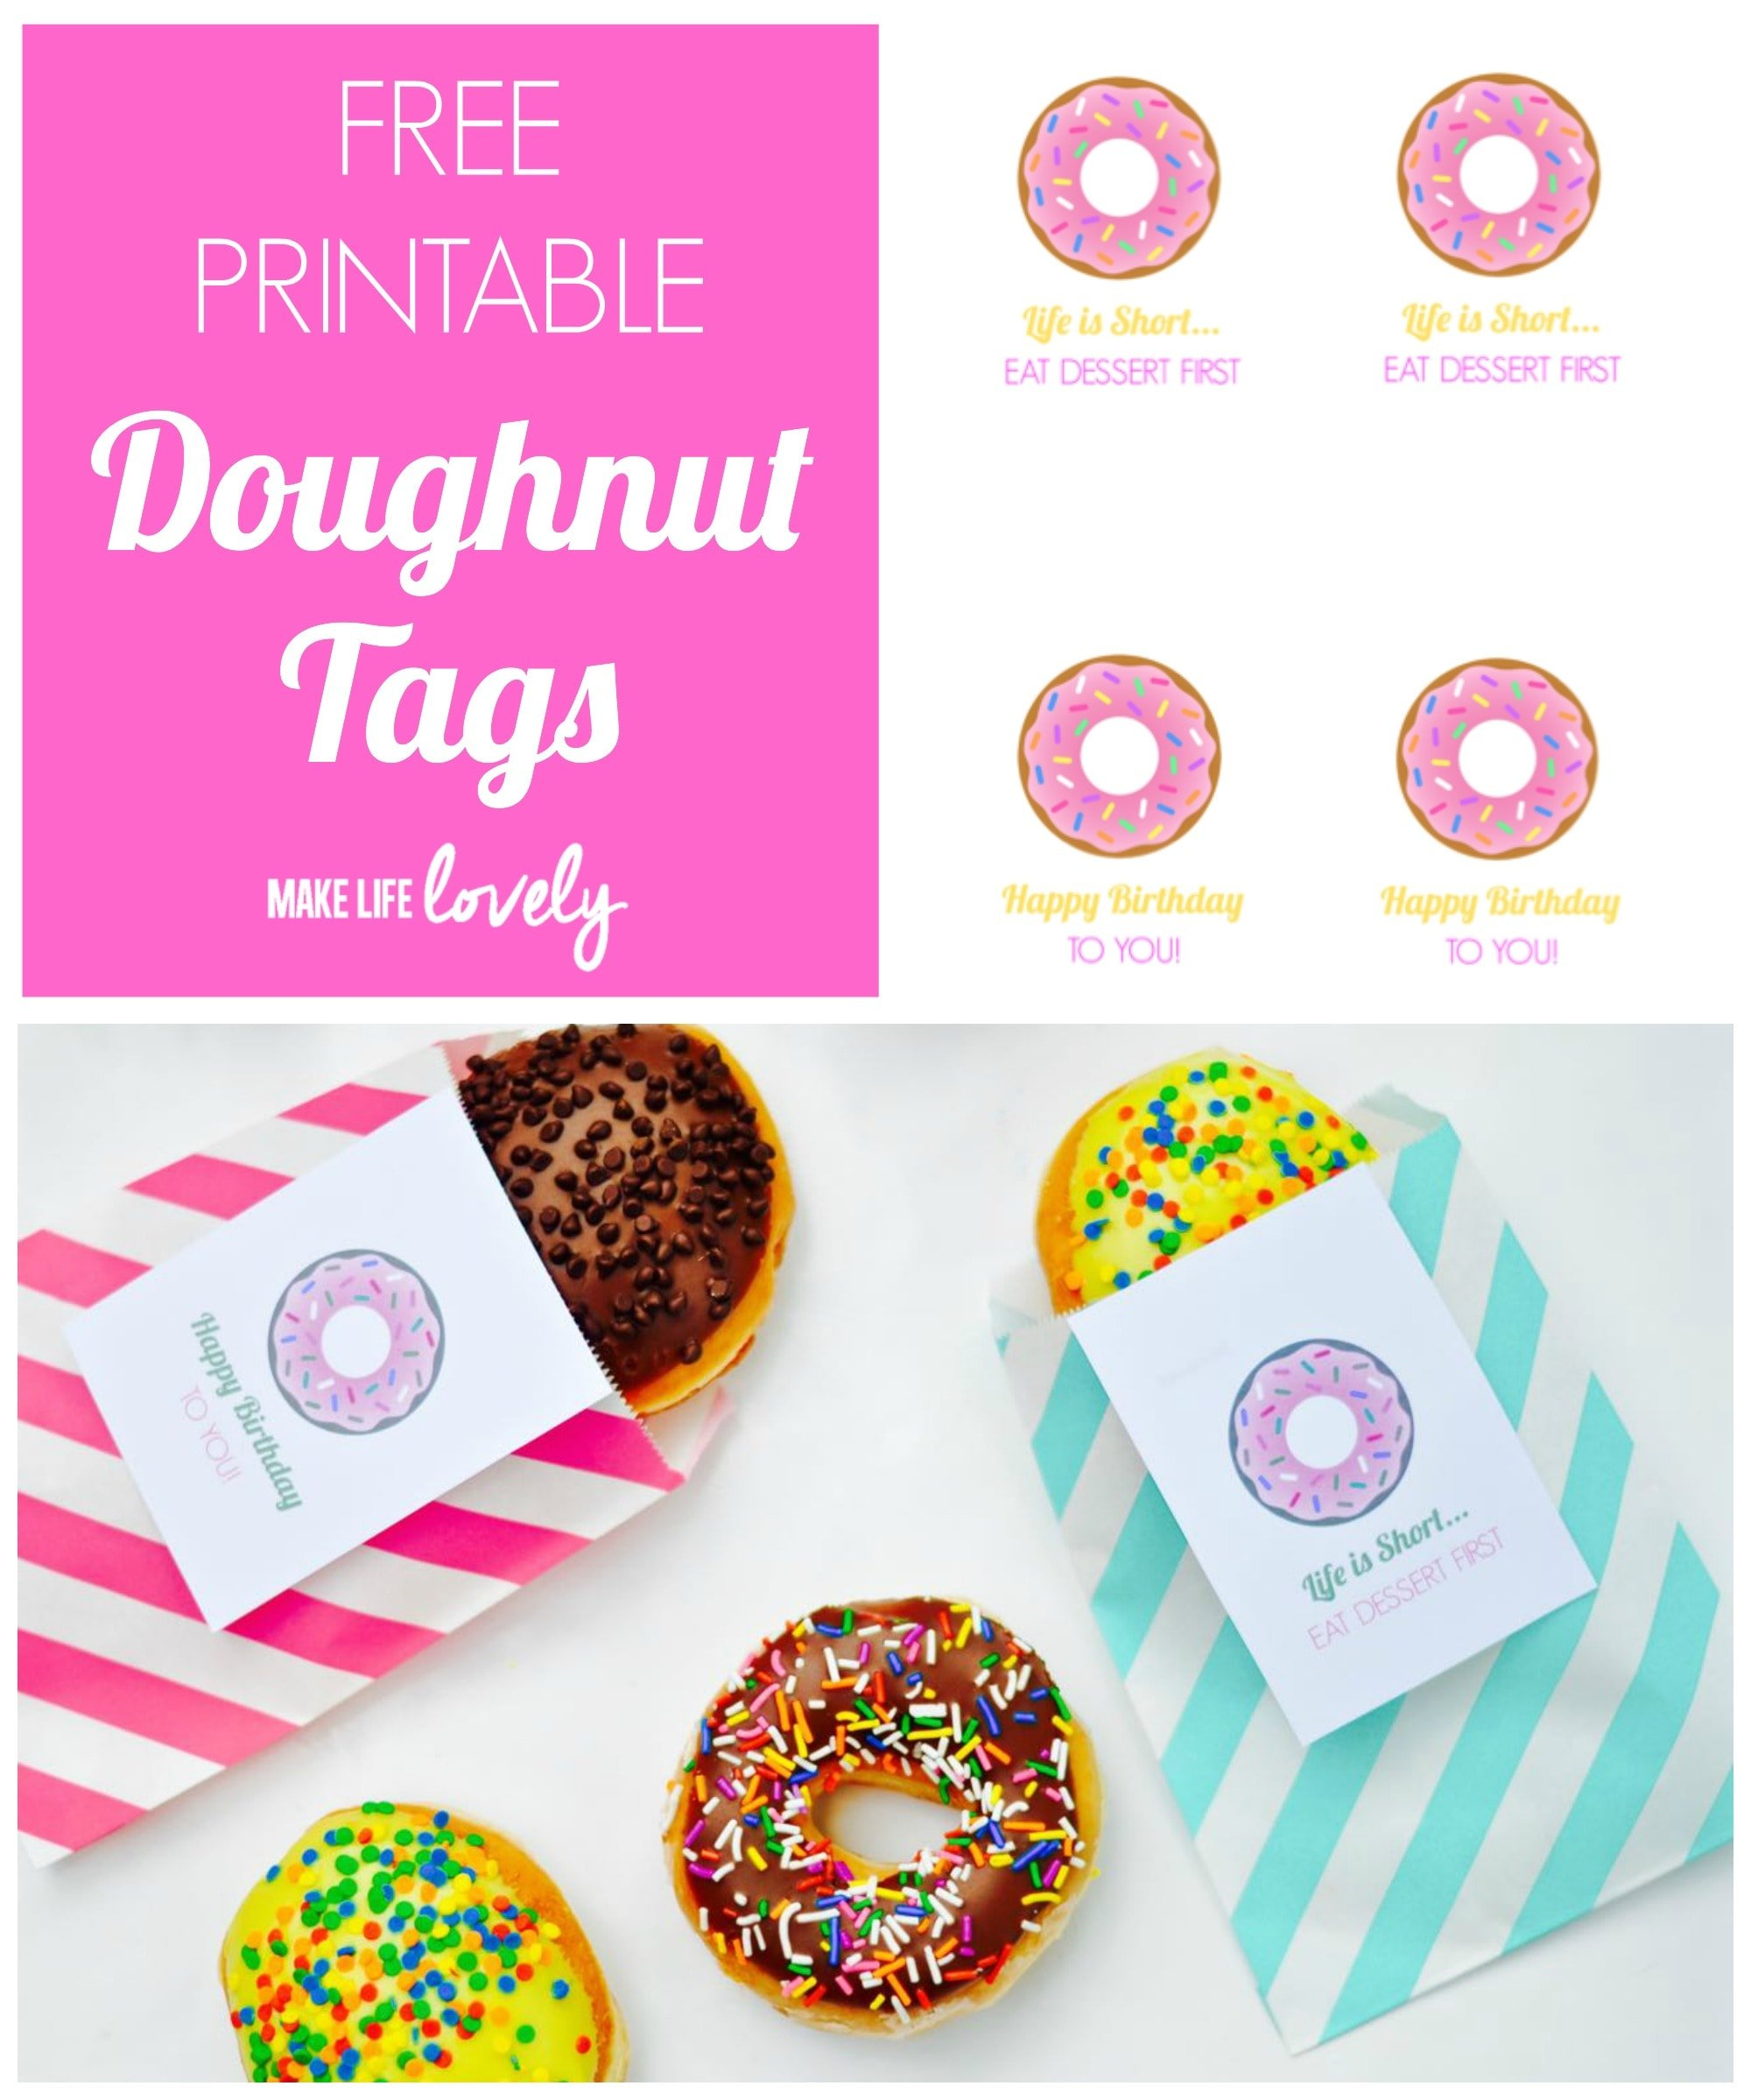 image relating to Donut Printable named Free of charge Printable Doughnut Tag + An Incredible Bundle - Generate Existence Attractive